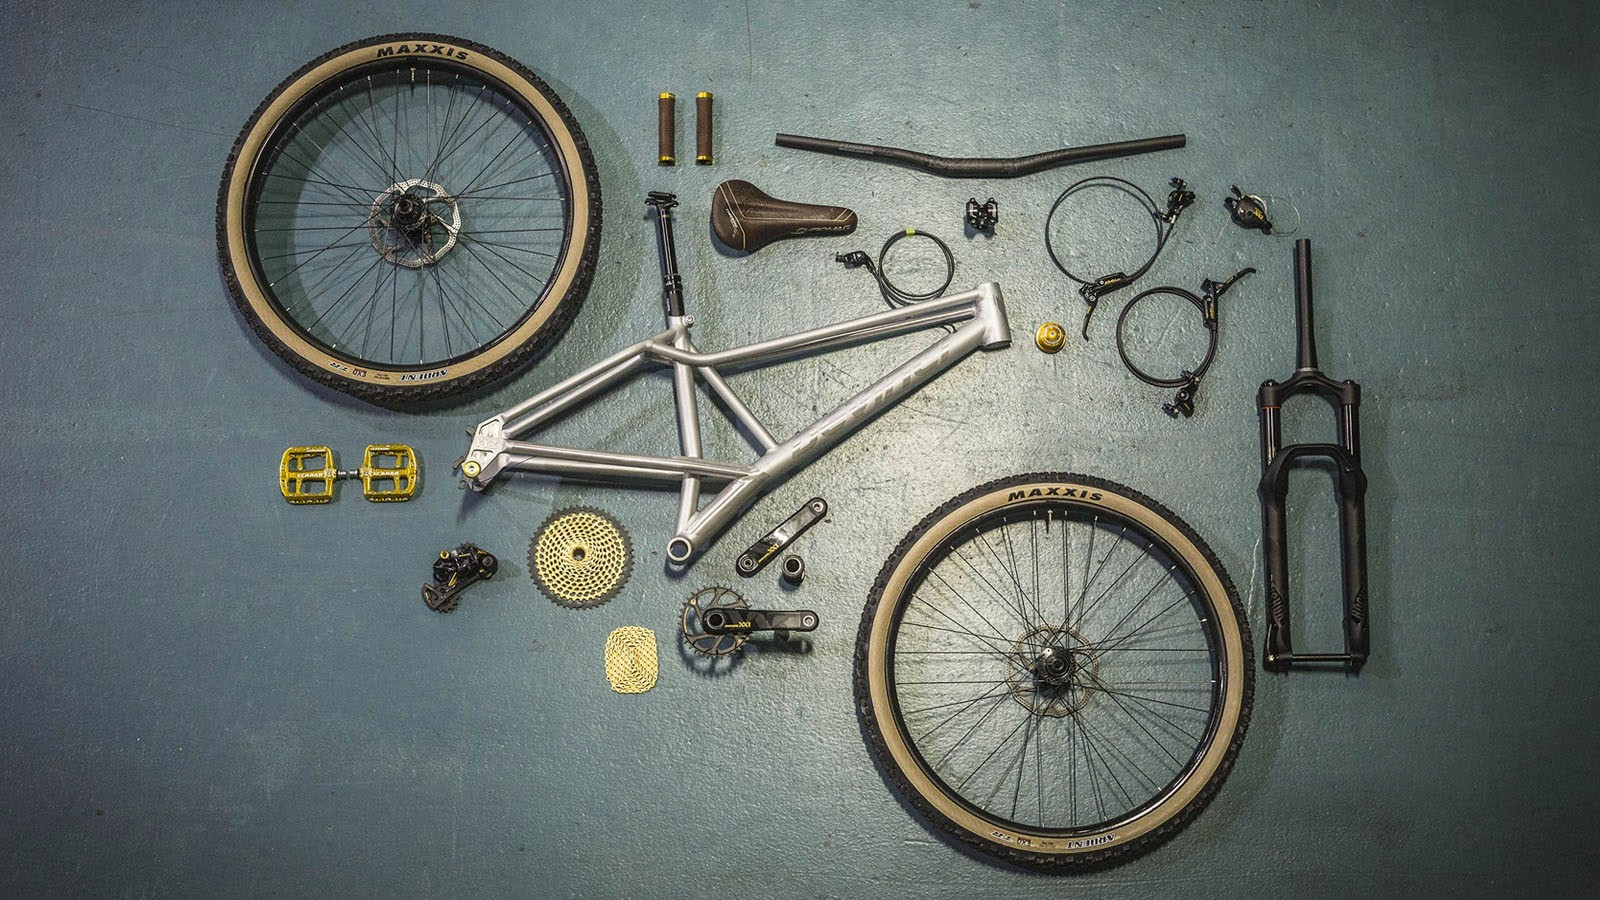 The finishing kit comes from SRAM, Chromag and Maxxis